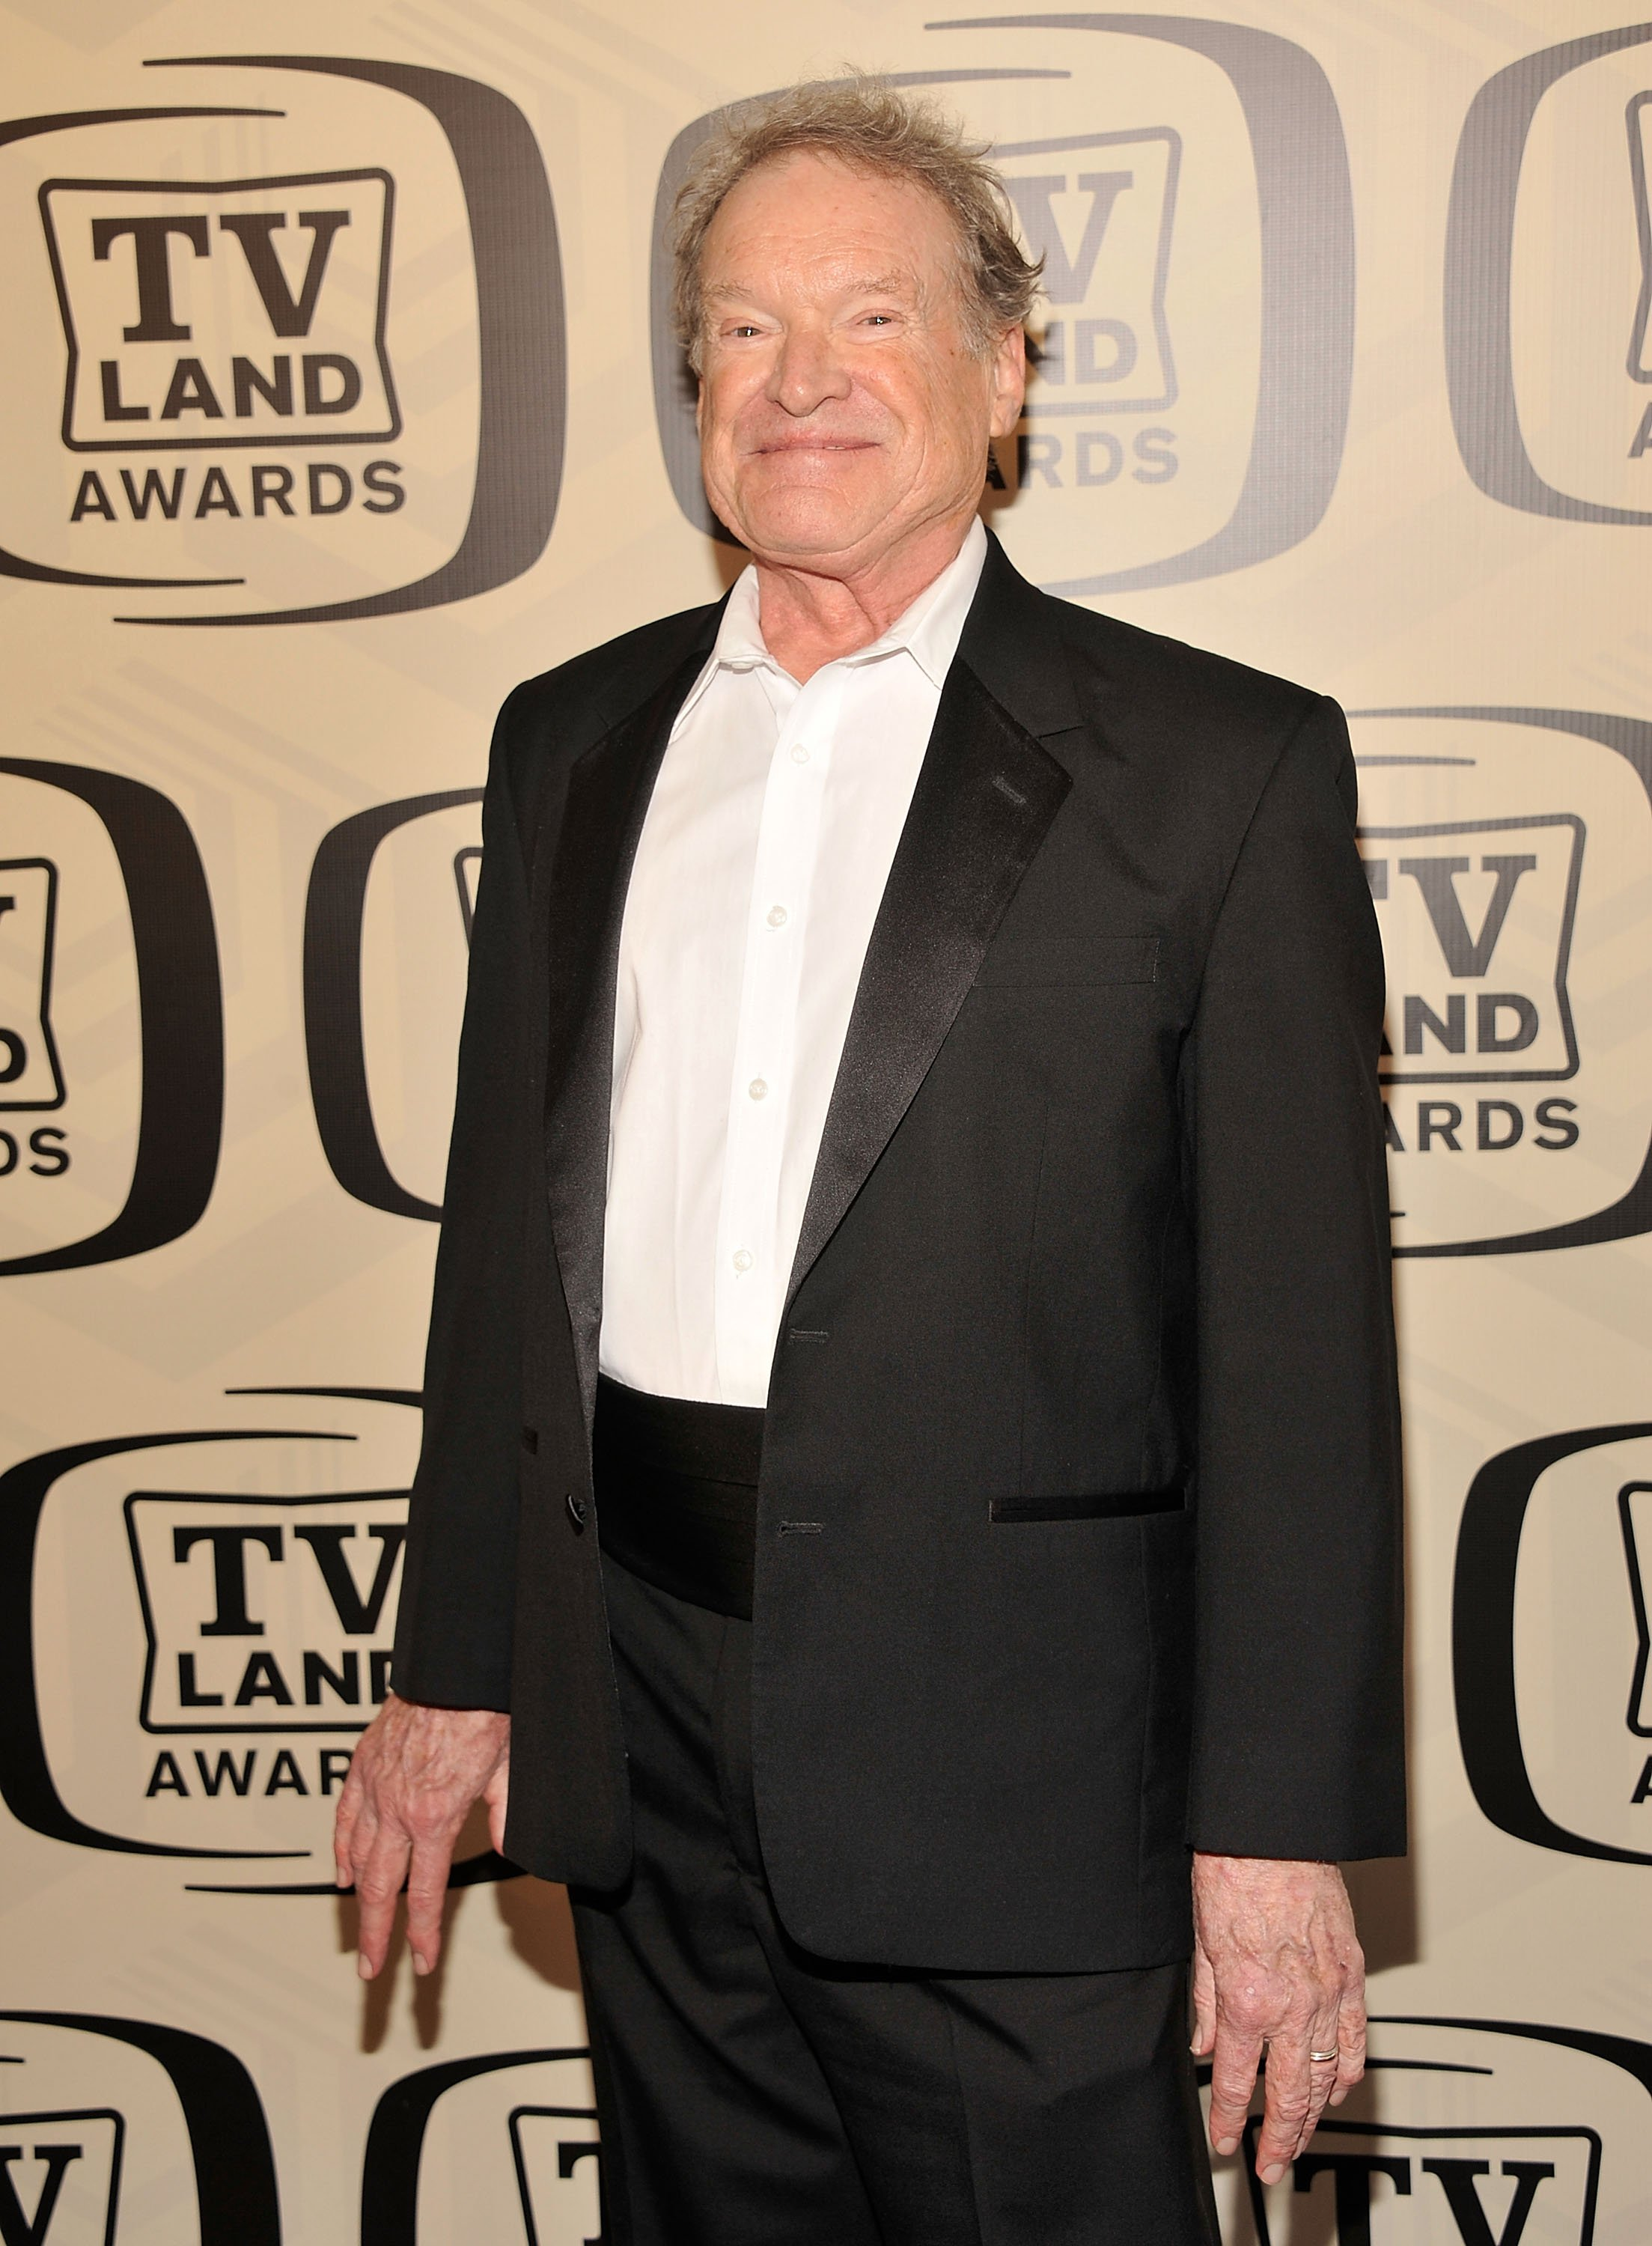 Charles Kimbrough attends the 10th Annual TV Land Awards at the Lexington Avenue Armory on April 14, 2012, in New York City. | Source: Getty Images.